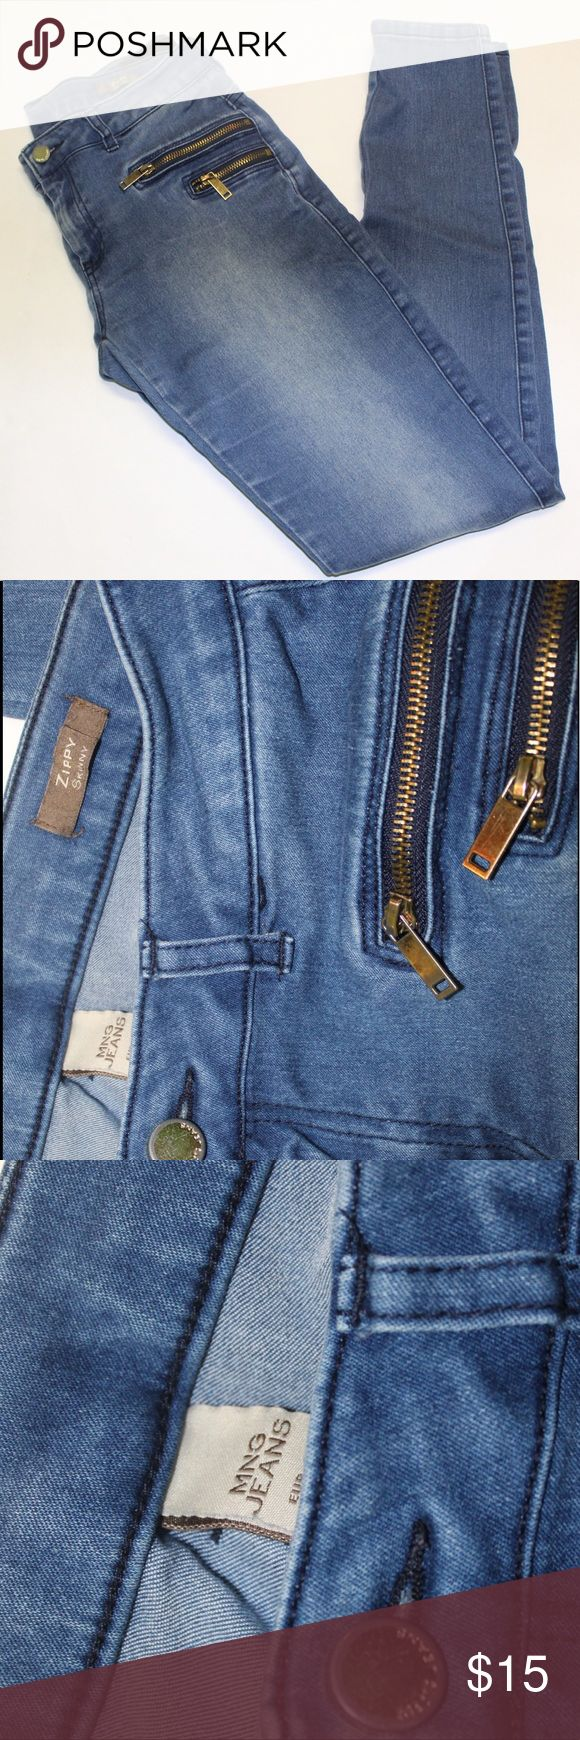 Mango Jeans with double gold zip accent Mango Jeans with double zip accent GUC Mango Jeans Skinny